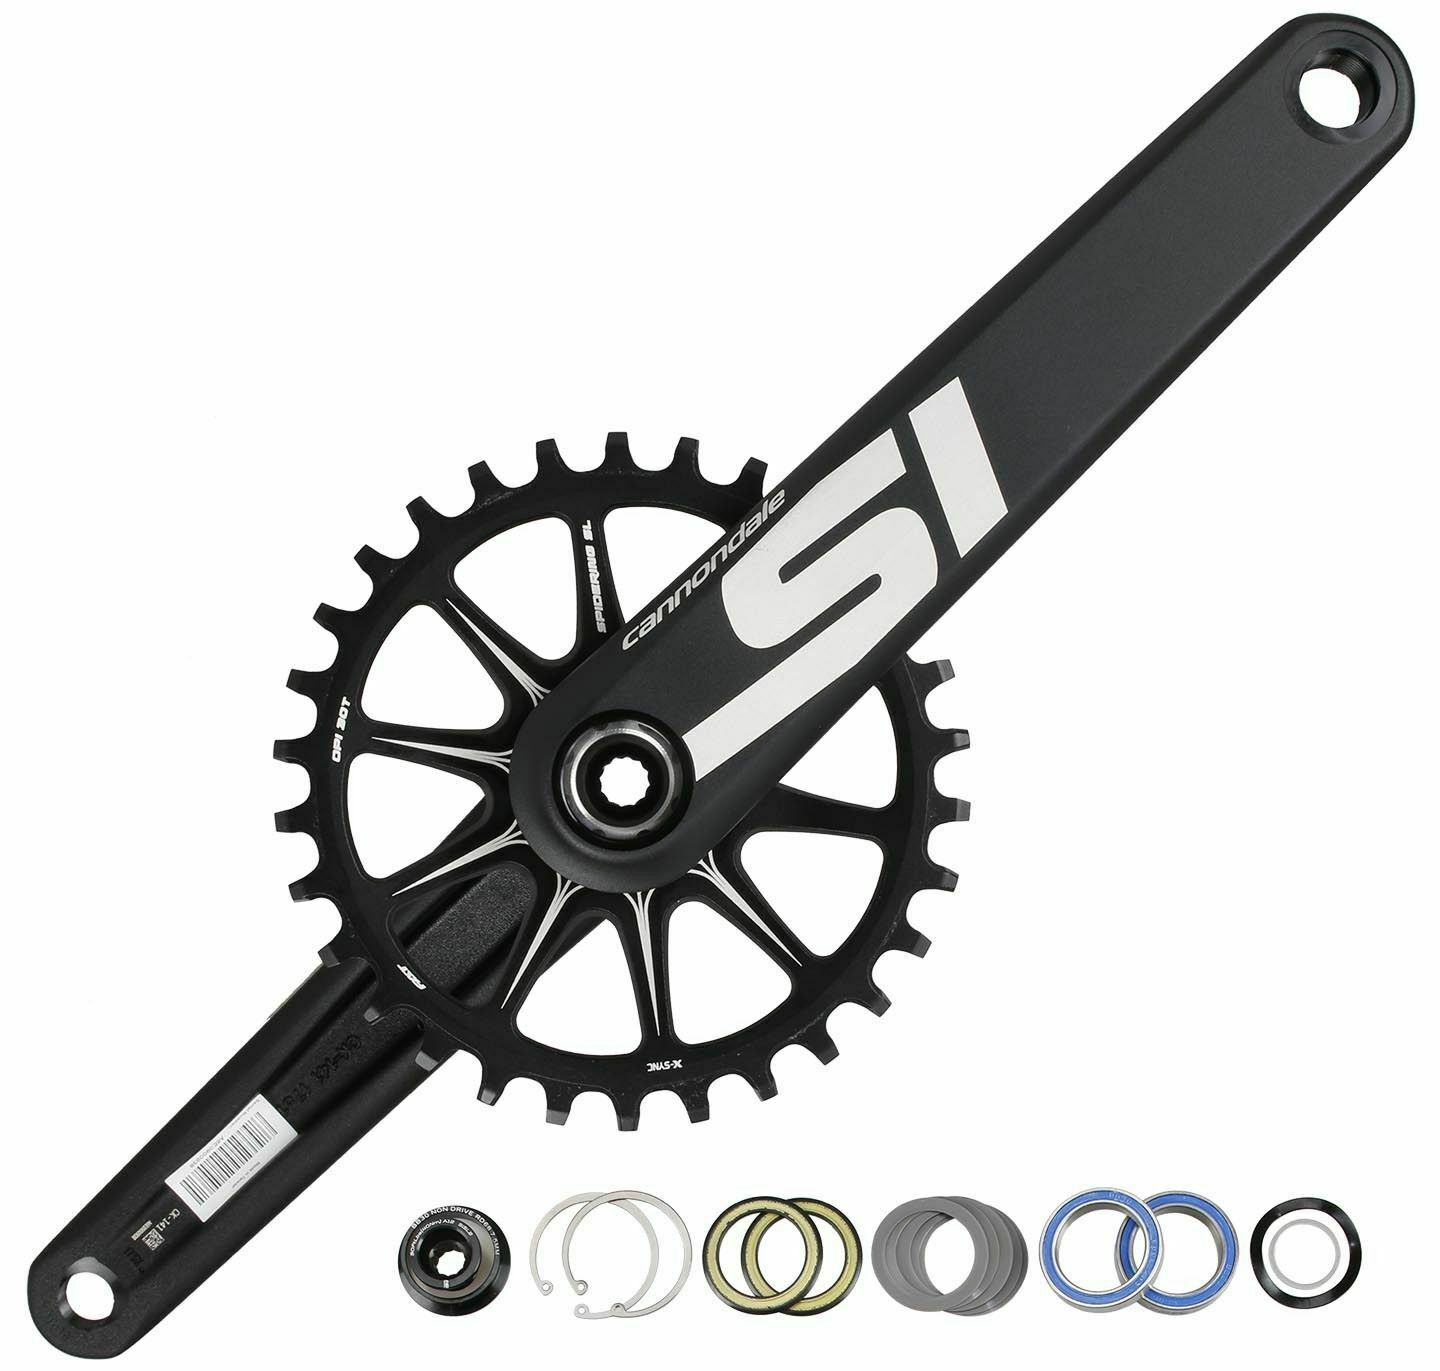 b35f66e3874 Buy Cannondale Si BB30 MTB Mountain Bike Crankset 30T 175mm for 9-11 ...